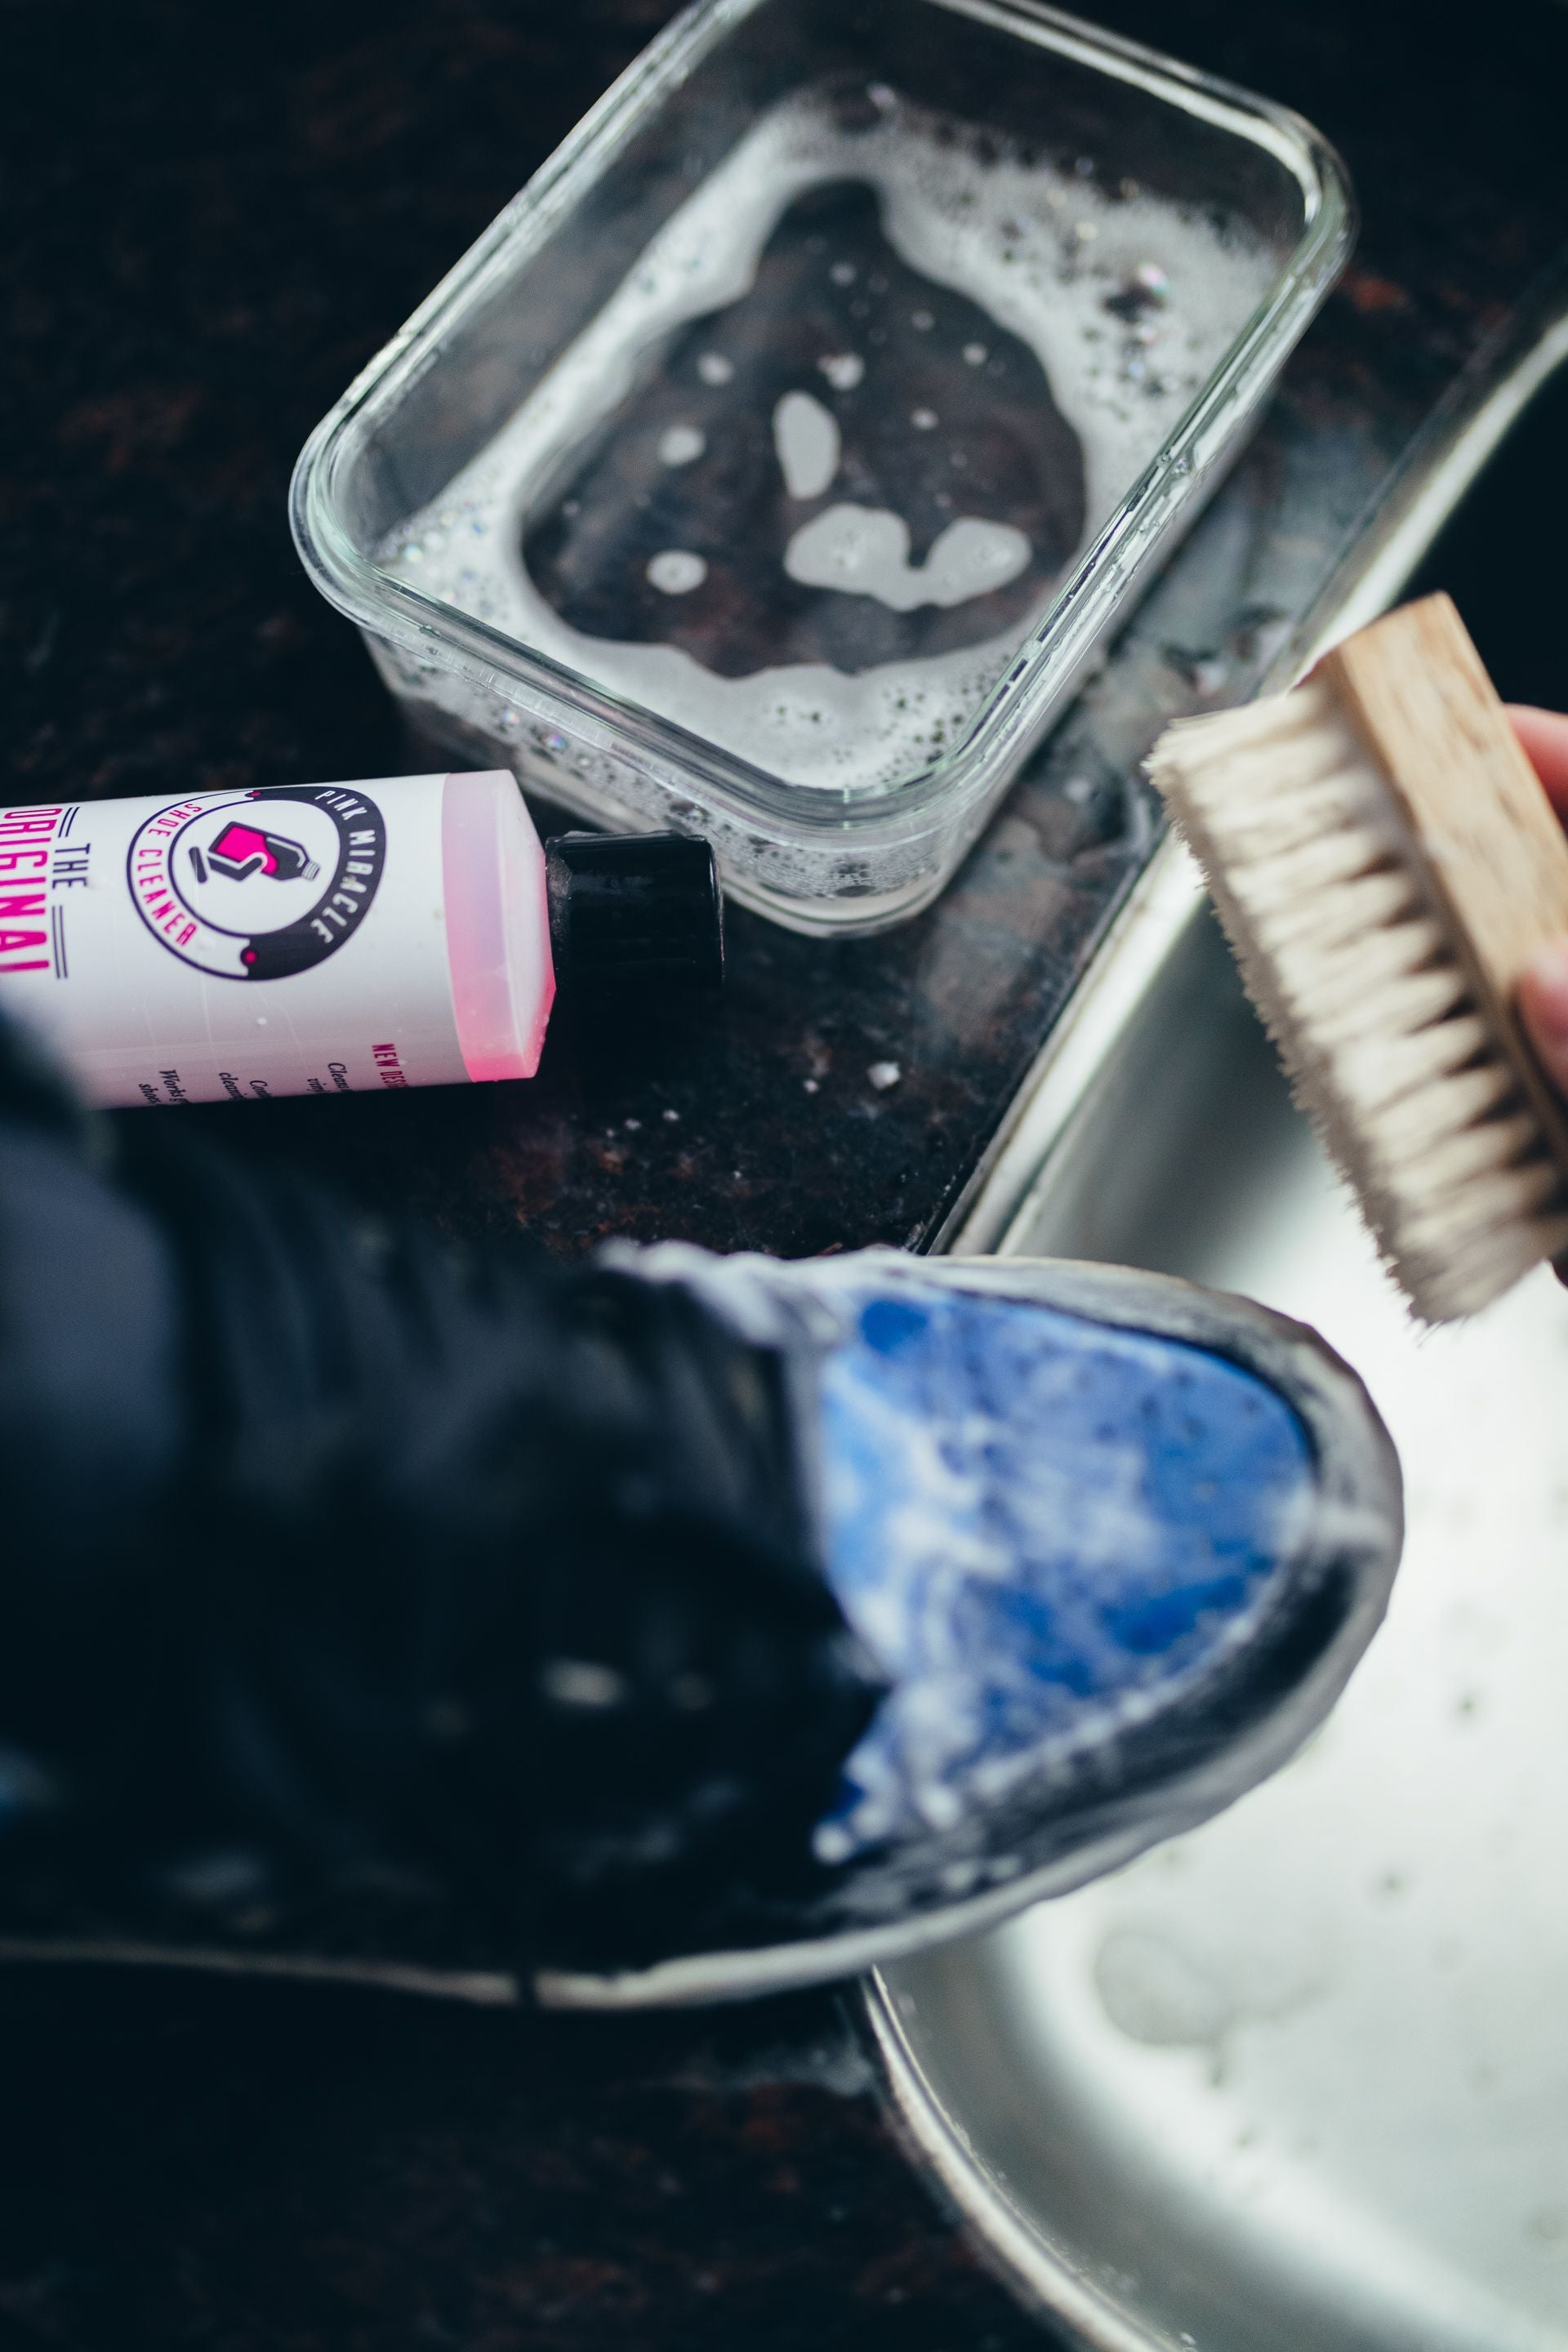 Pink Miracle Shoe Cleaner